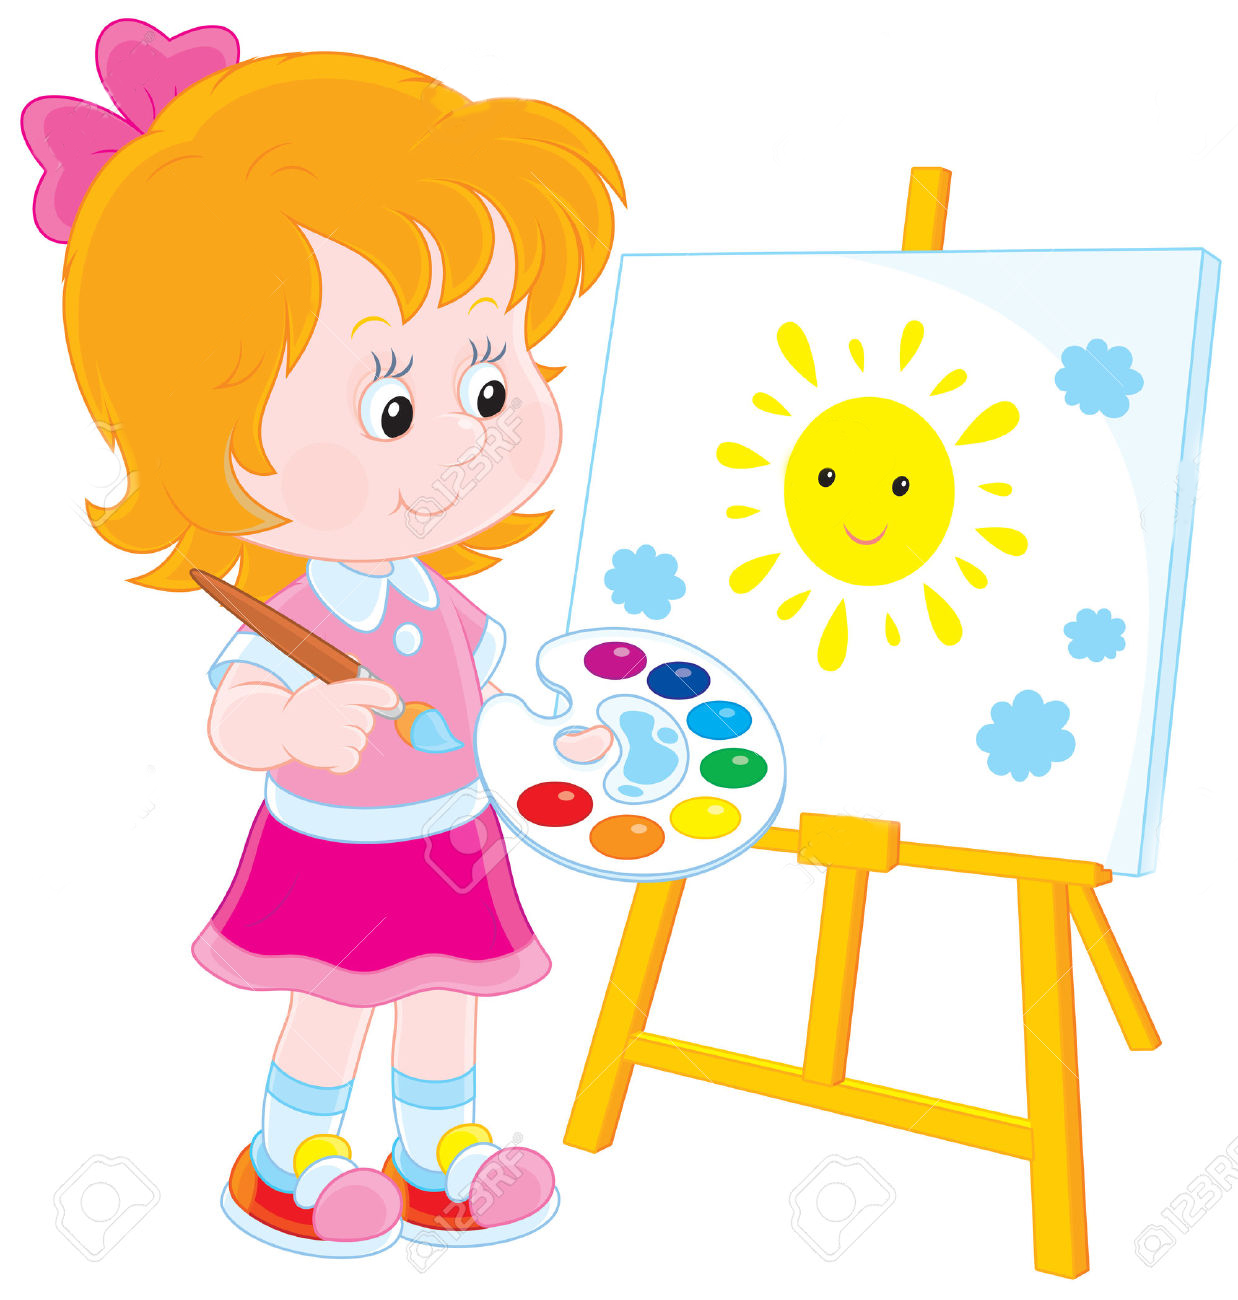 another famous creativity among kids is cartoon drawing there are a lot of kids who are passionate